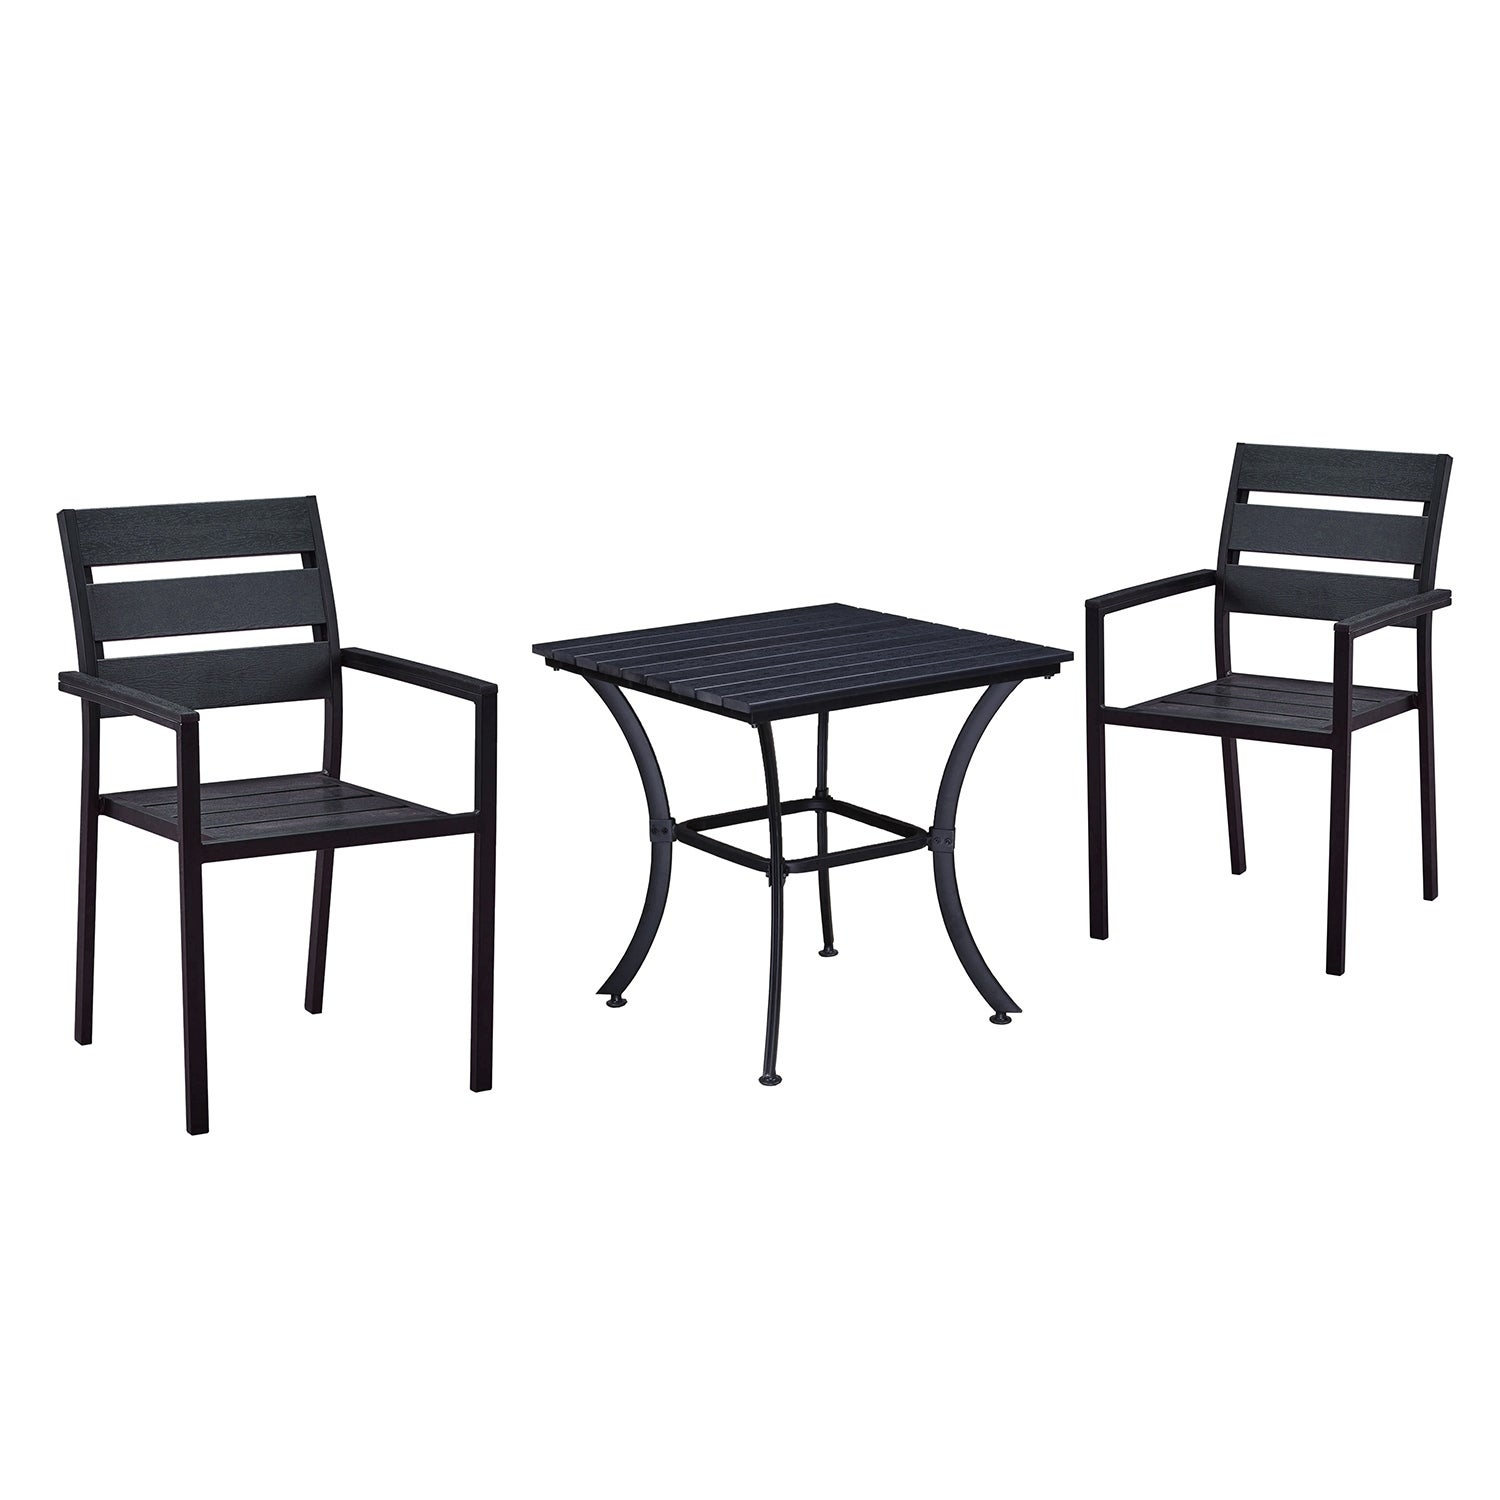 Details About Indoor And Outdoor Square 25 Inch Black Dining Table With Two Chairs